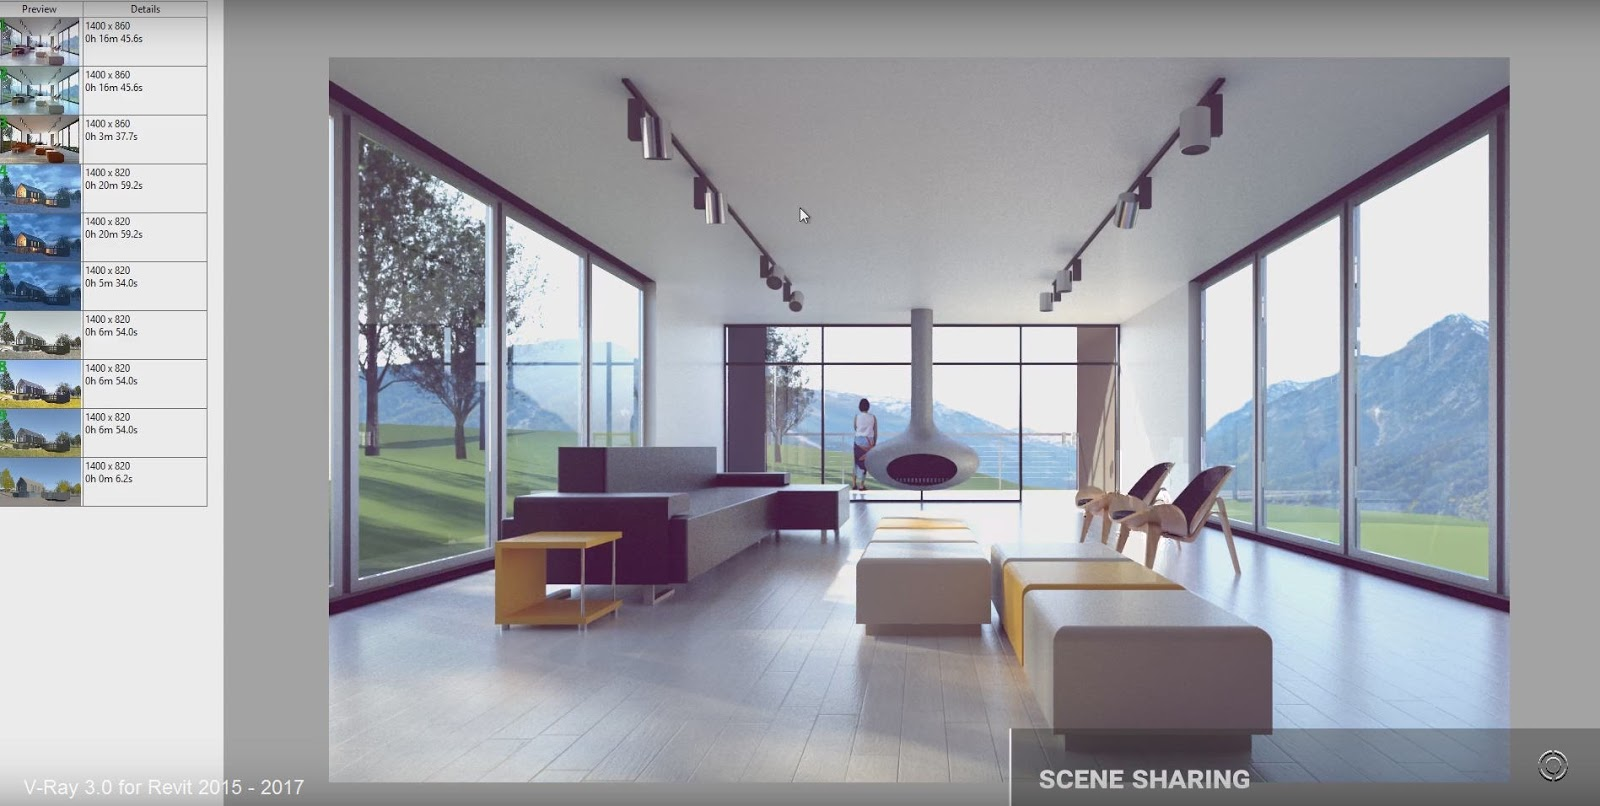 V-ray For Revit Torrent - roomcave's diary